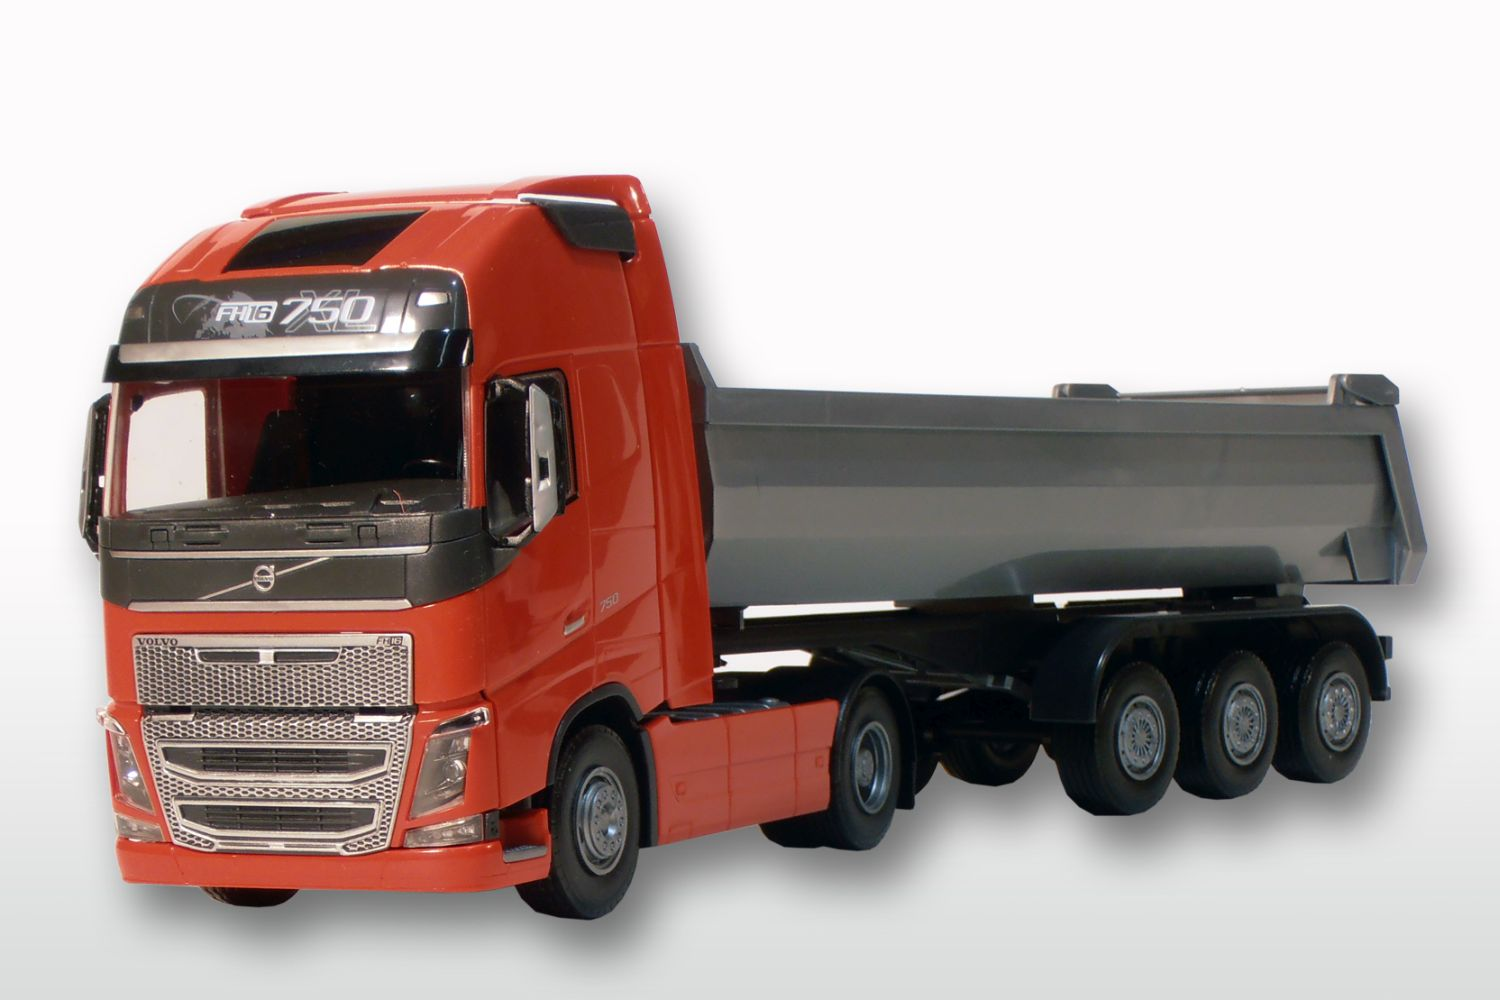 Volvo FH (New) 2-As Rood met Grijze 3-As Kieper